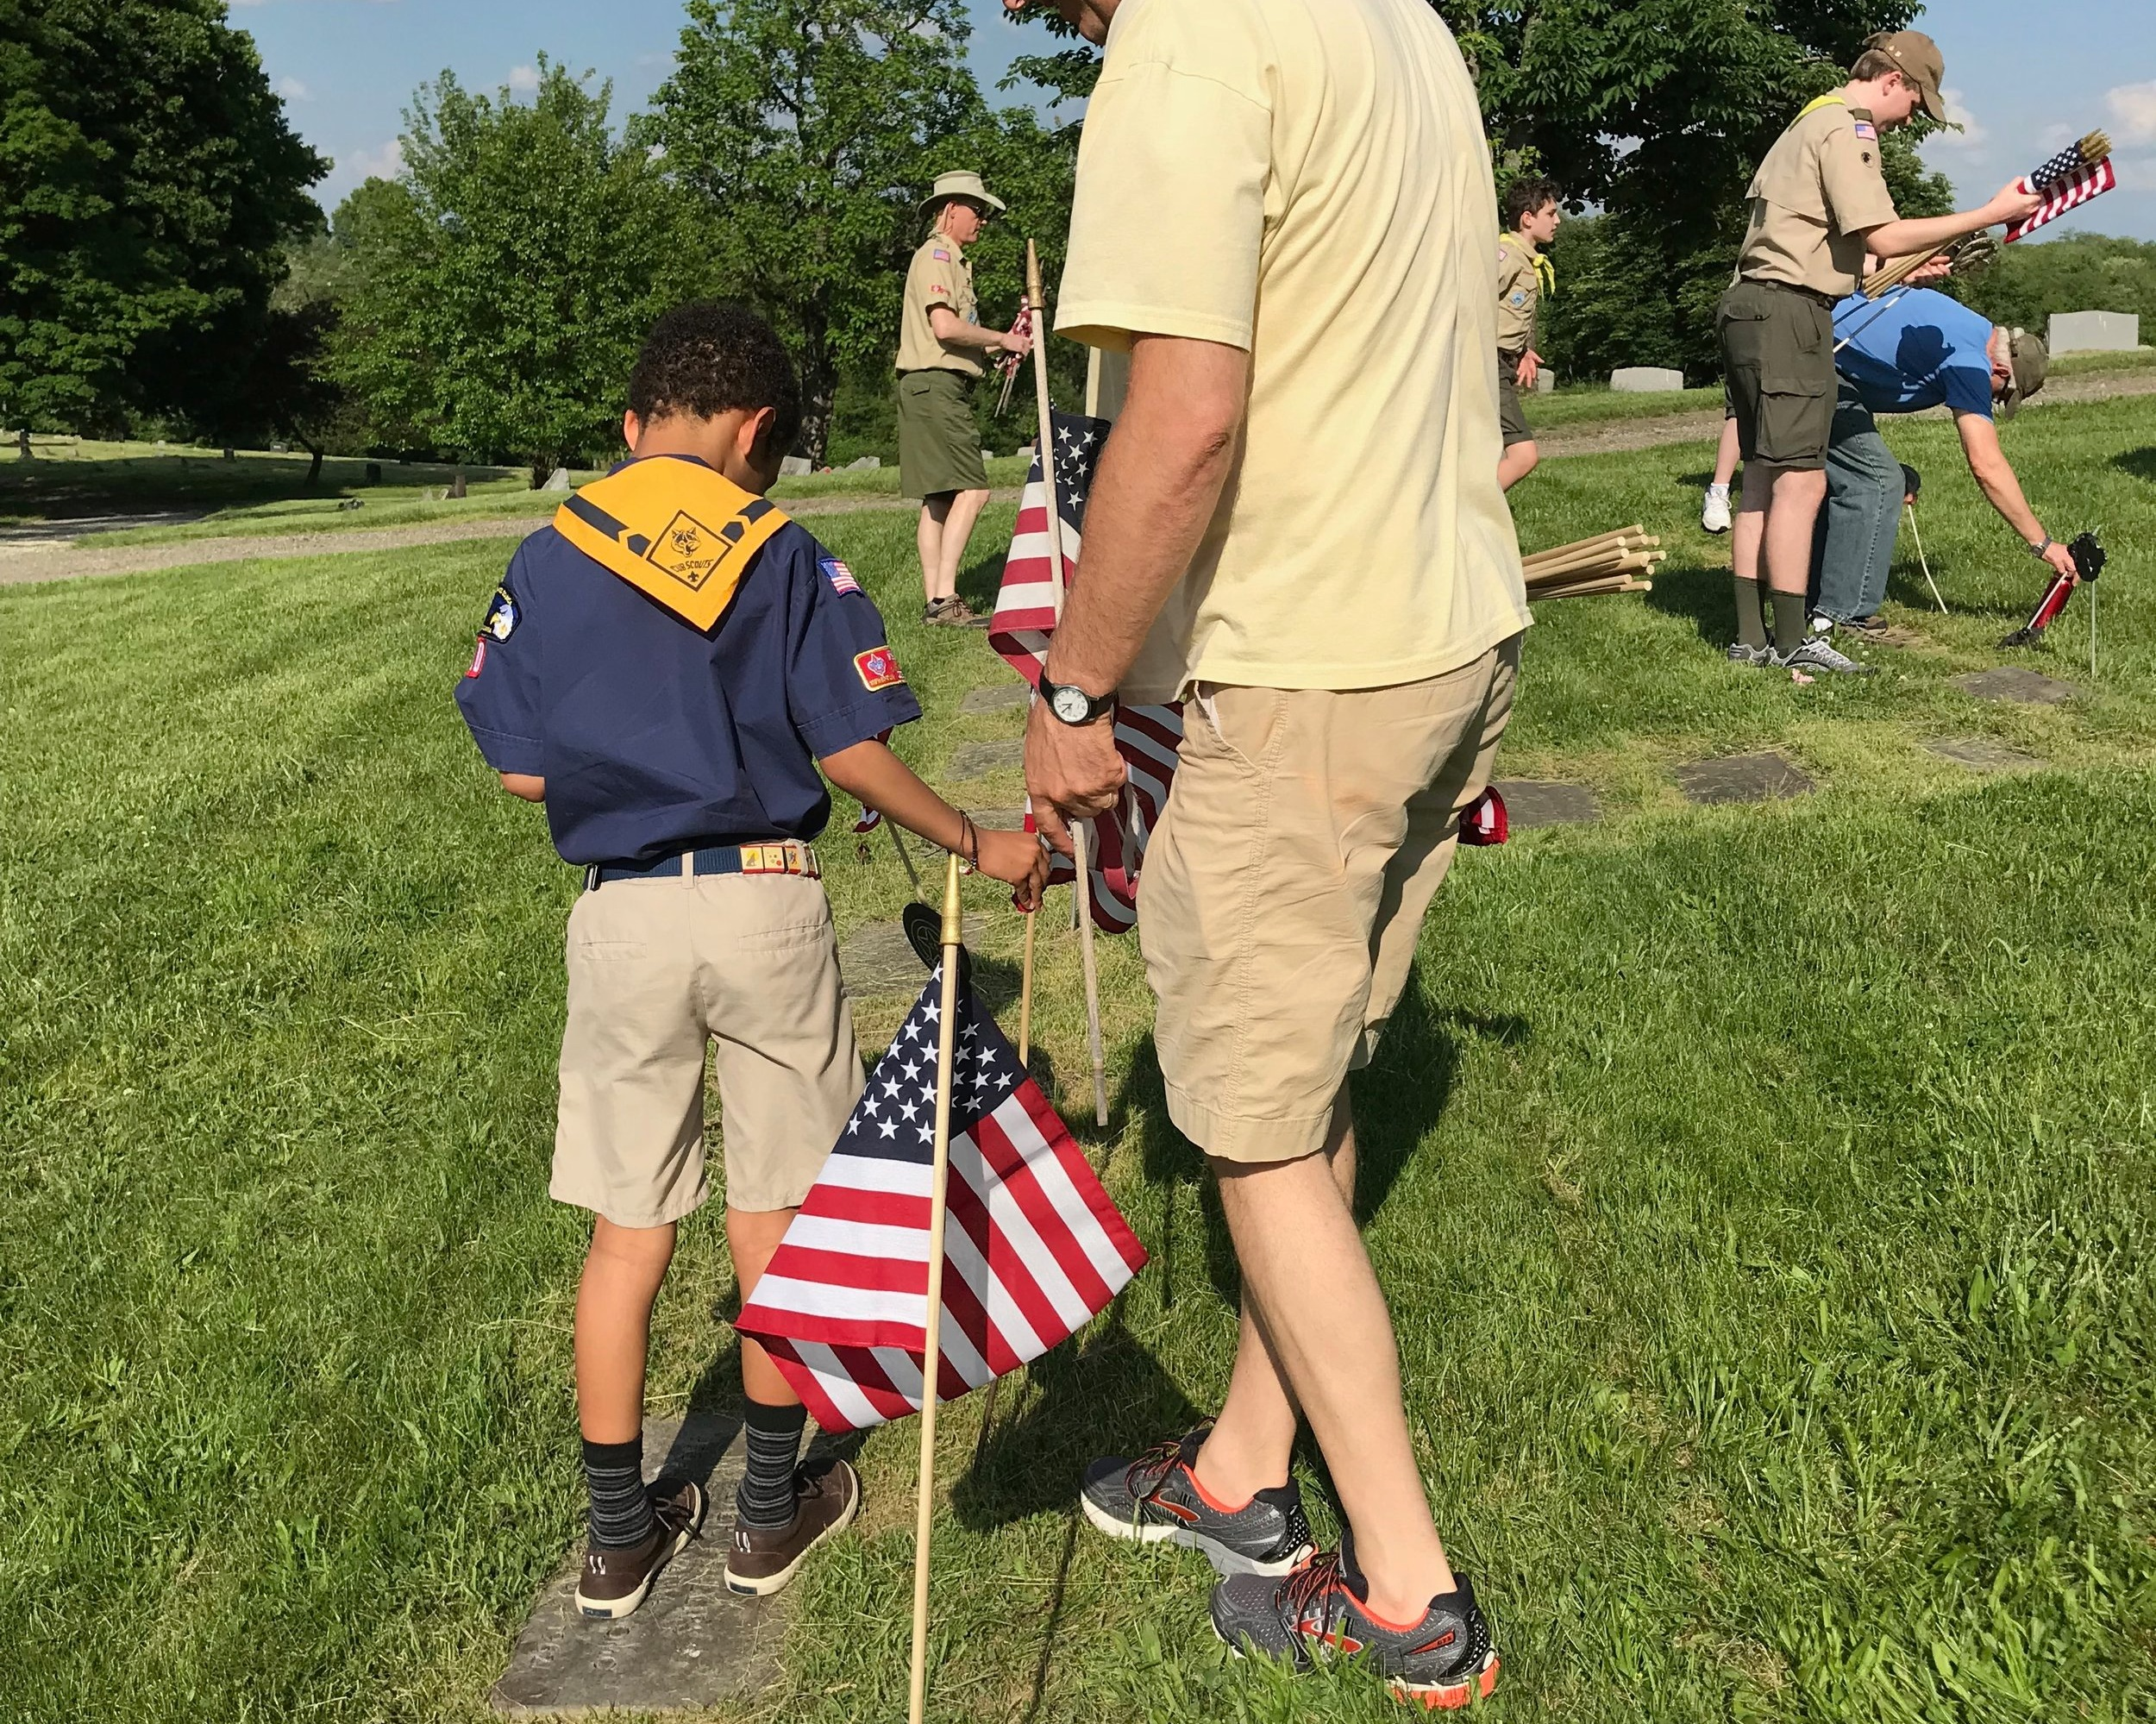 The Scout Oath - On my honor I will do my best to do my duty to God and my country and to obey the Scout Law; to help other people at all times; to keep myself physically strong, mentally awake, and morally straight.